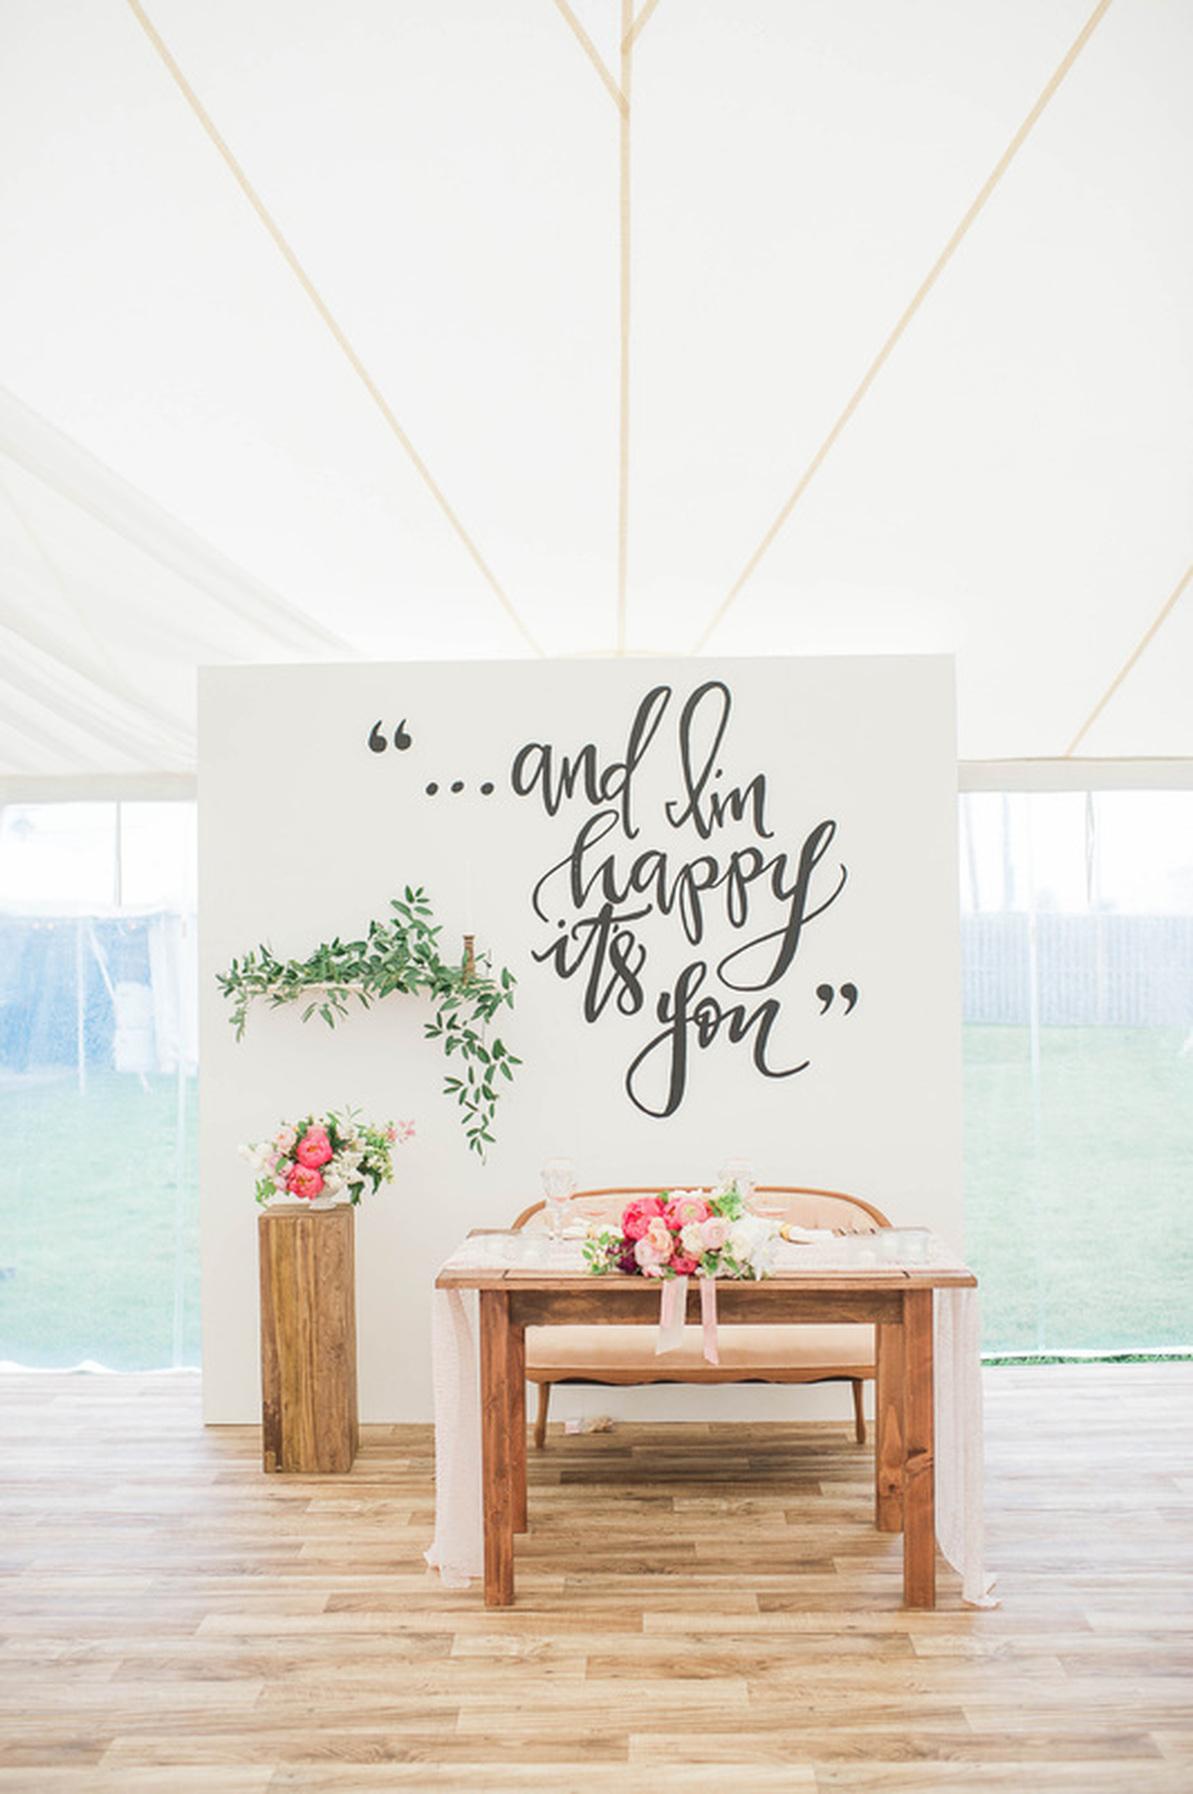 Outdoor Wedding Sweetheart Table Design and Backdrop